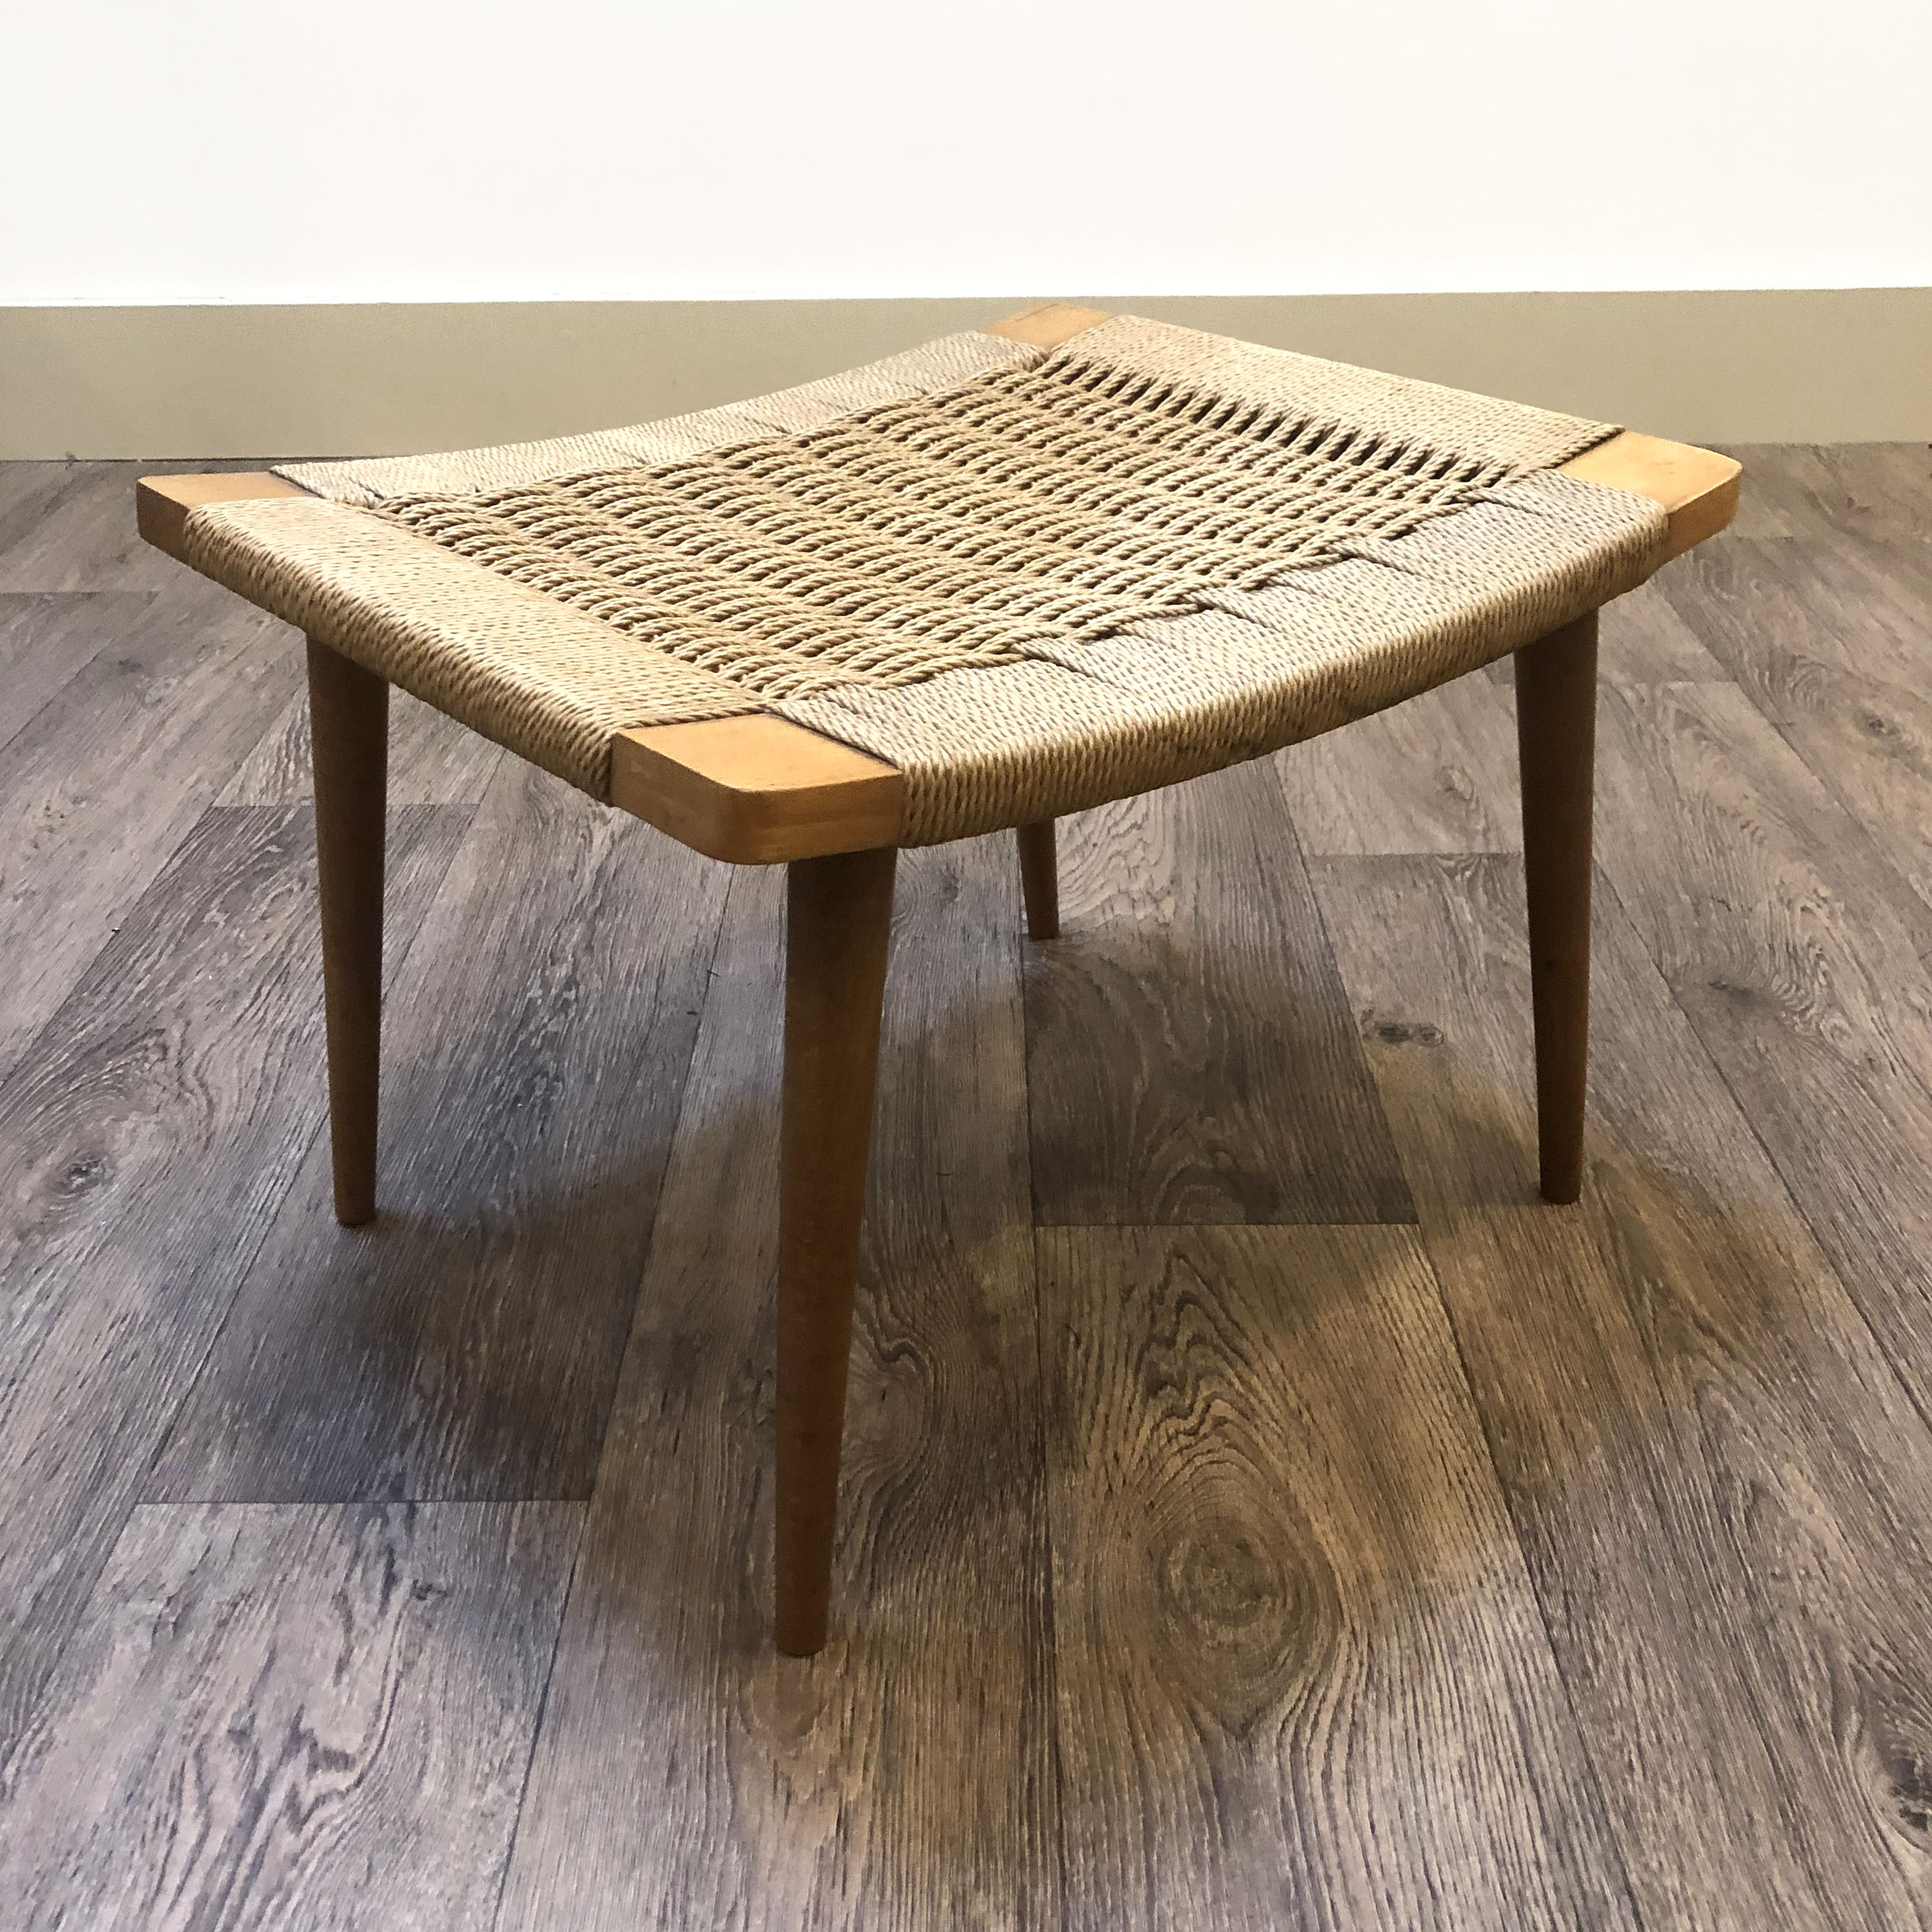 AFM Japanese Stool